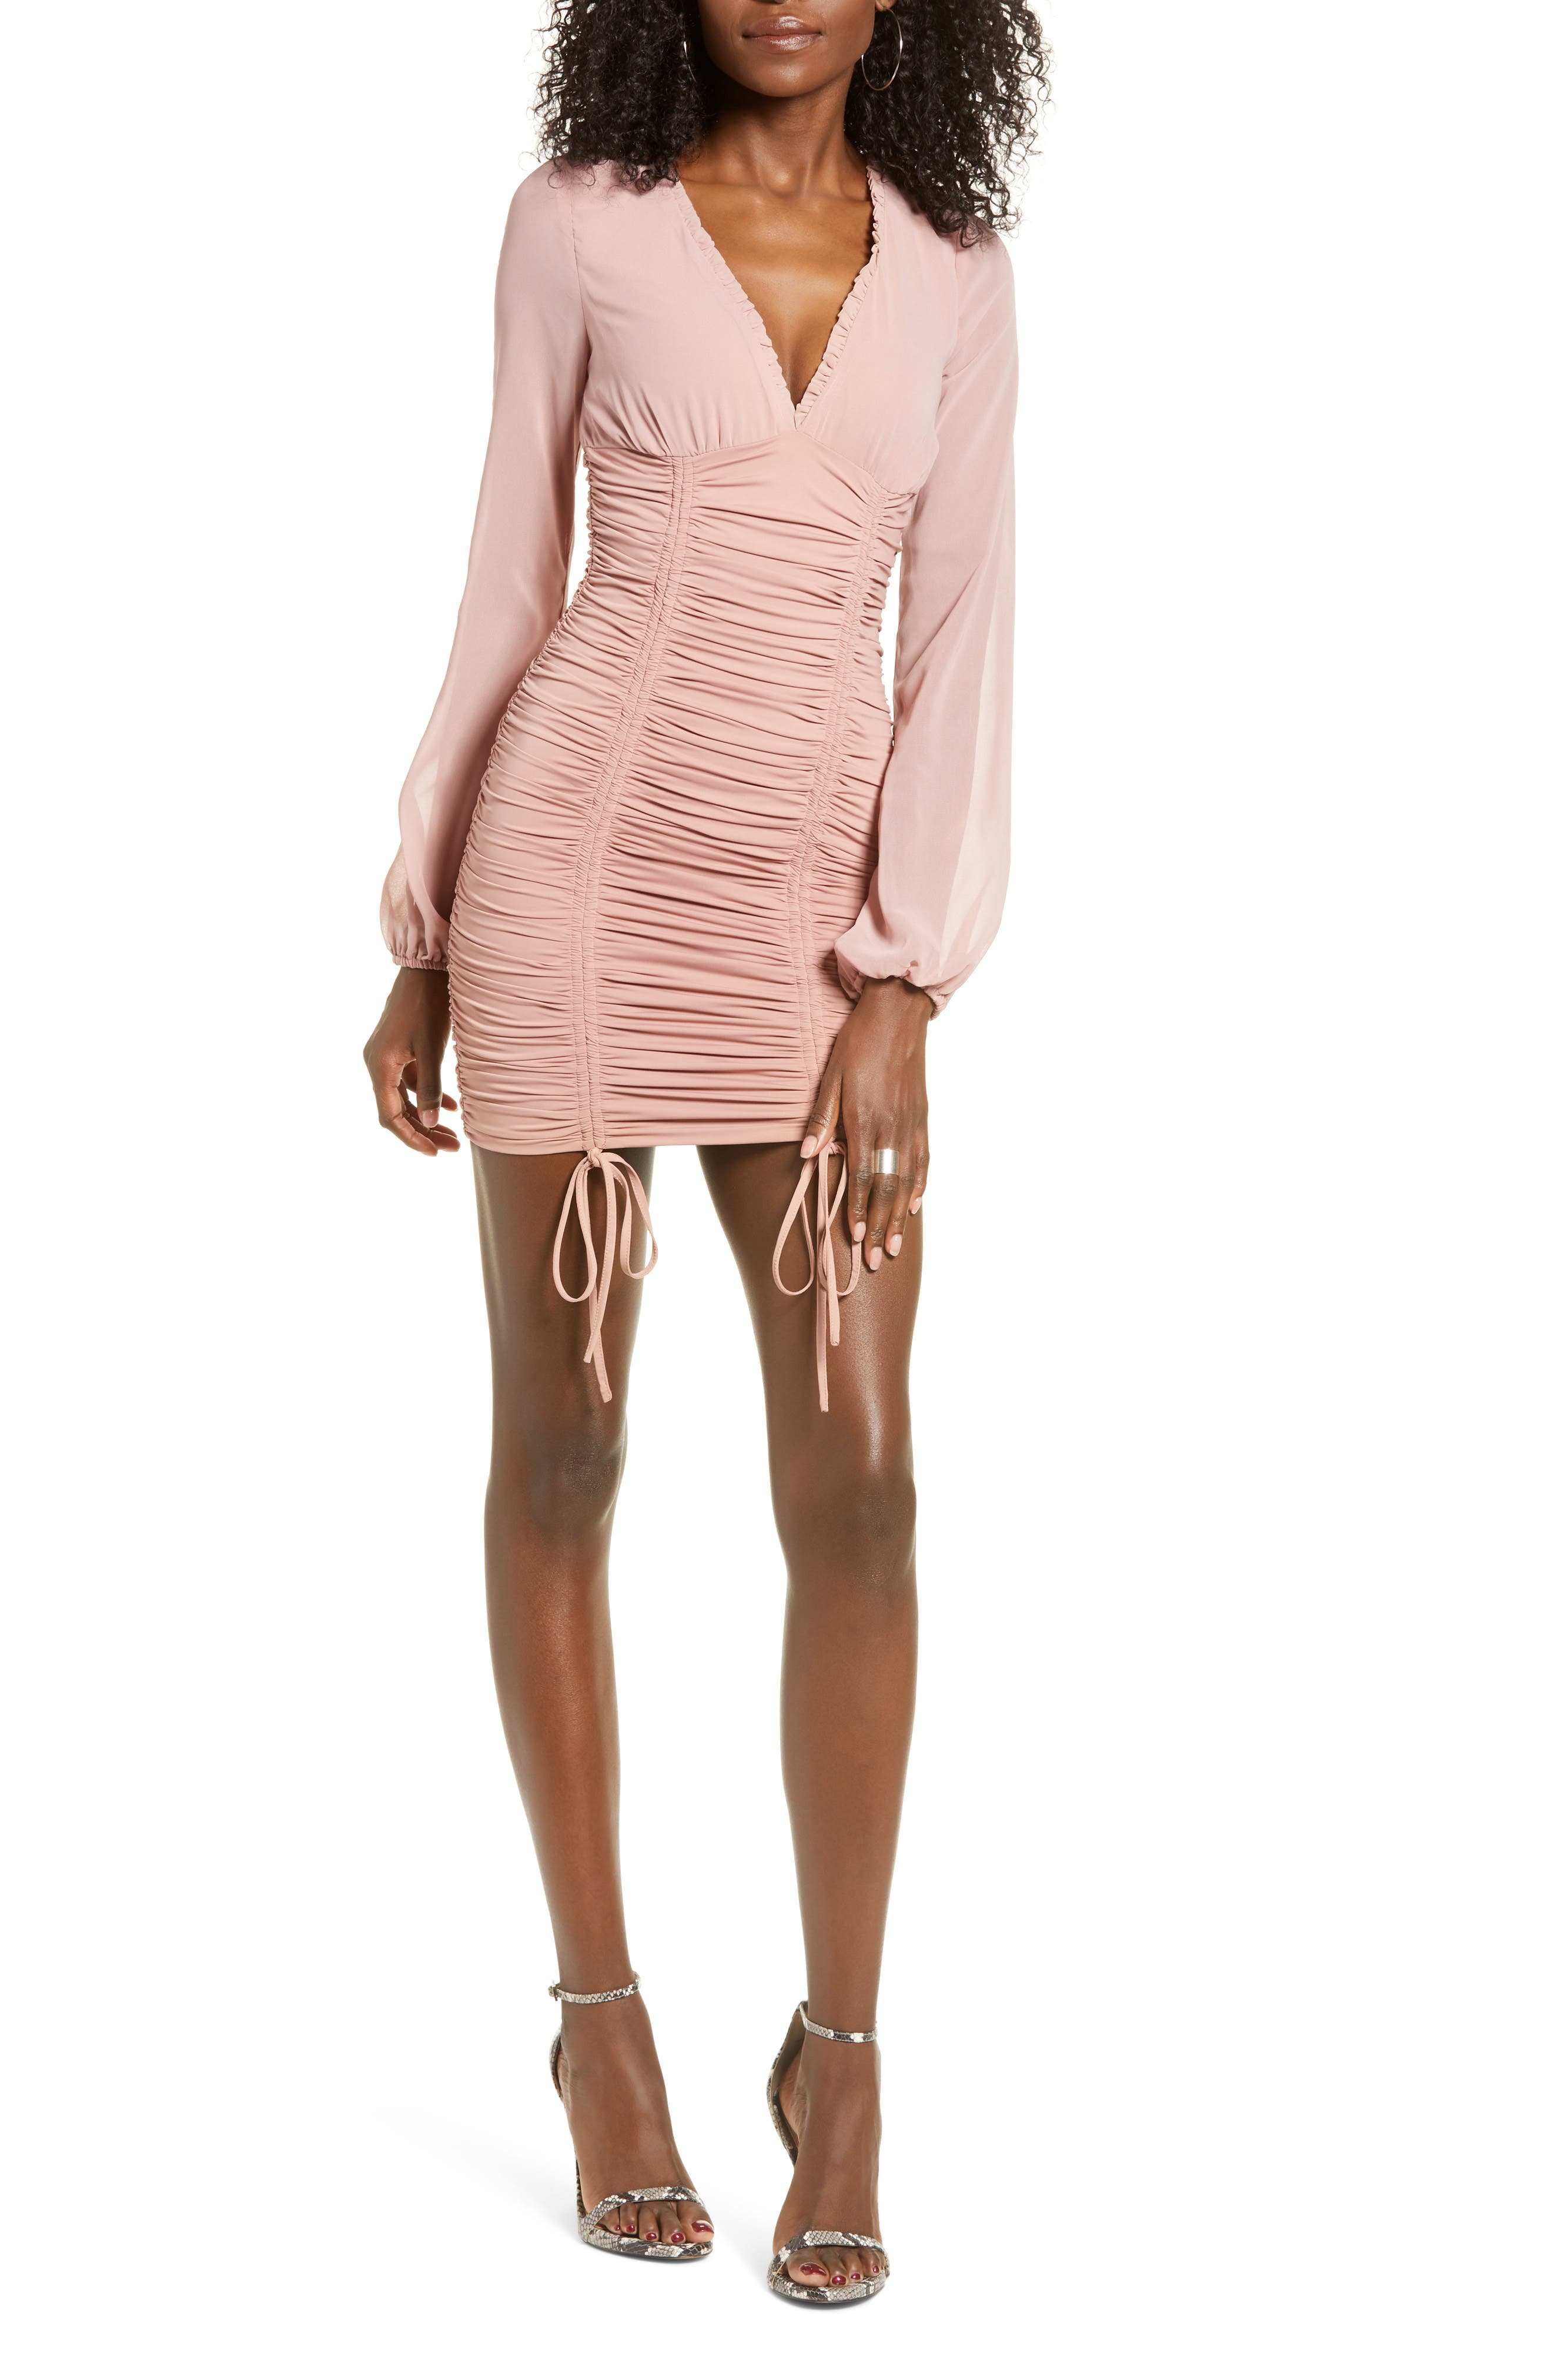 Tiger Mist Magnolia Ruched Long Sleeve Minidress